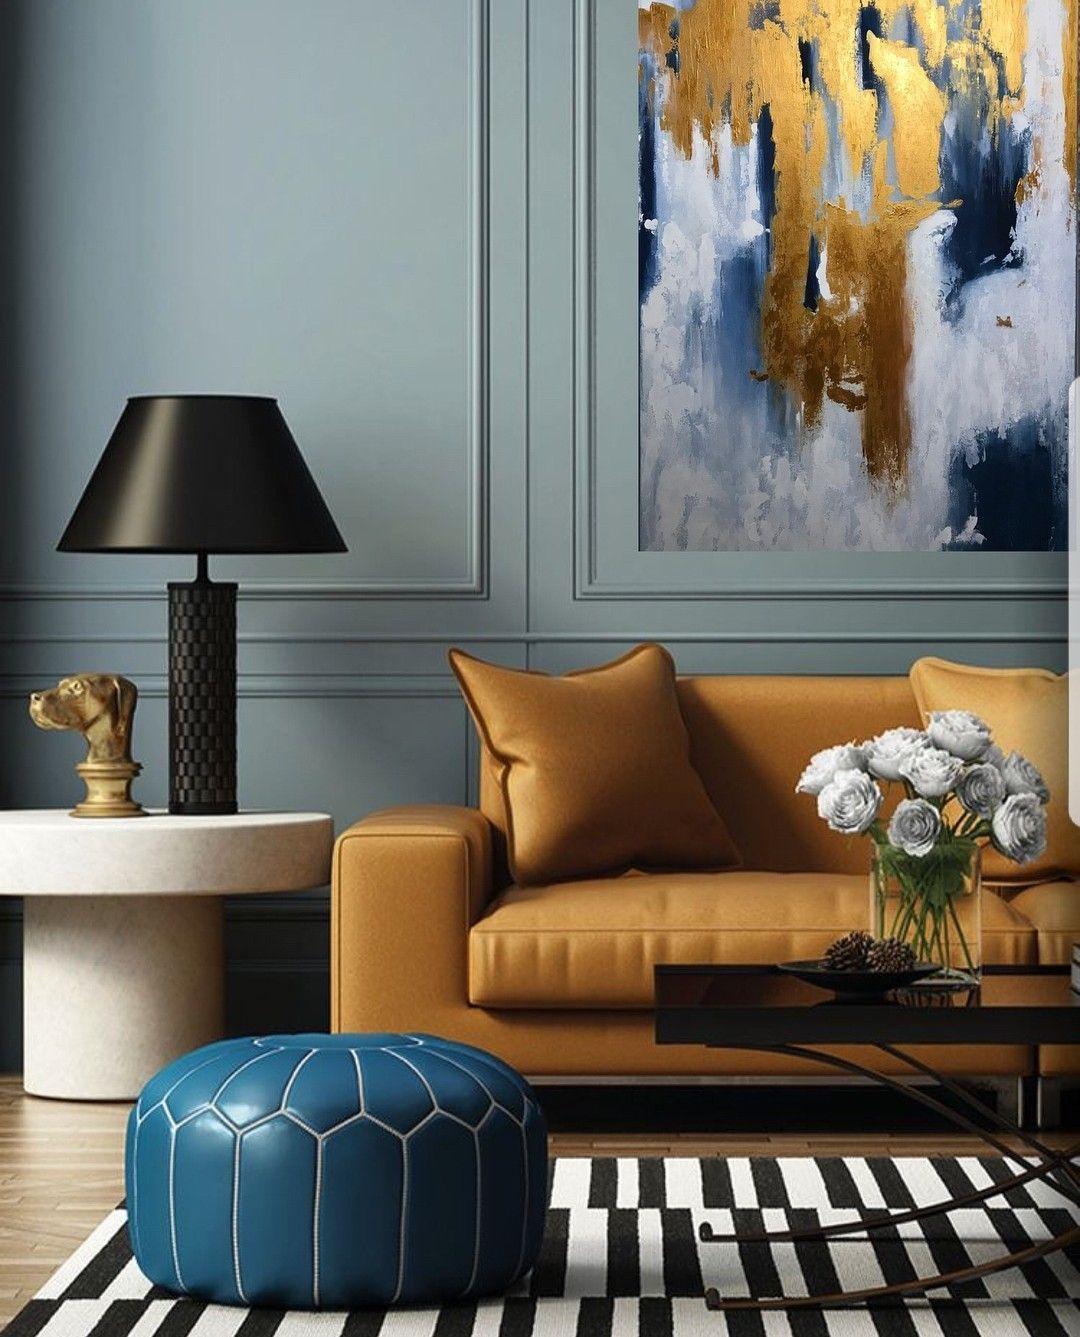 Home Interior Design — Kinda matchy matchy but I like it. in ...